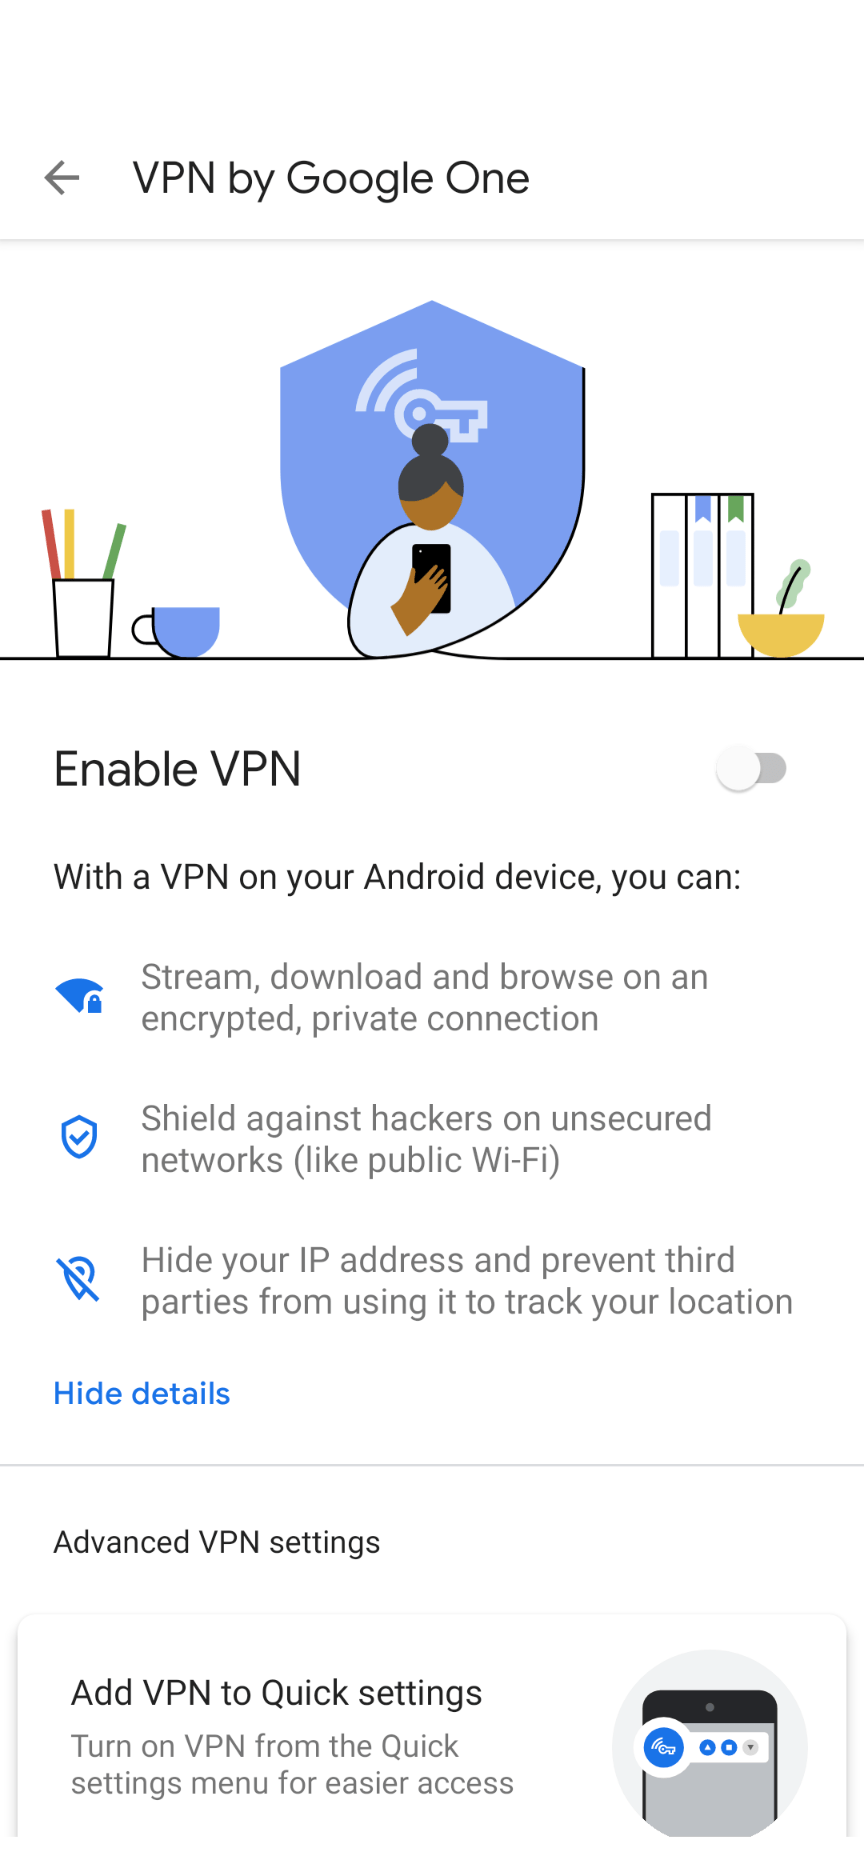 VPN by Google One on Android